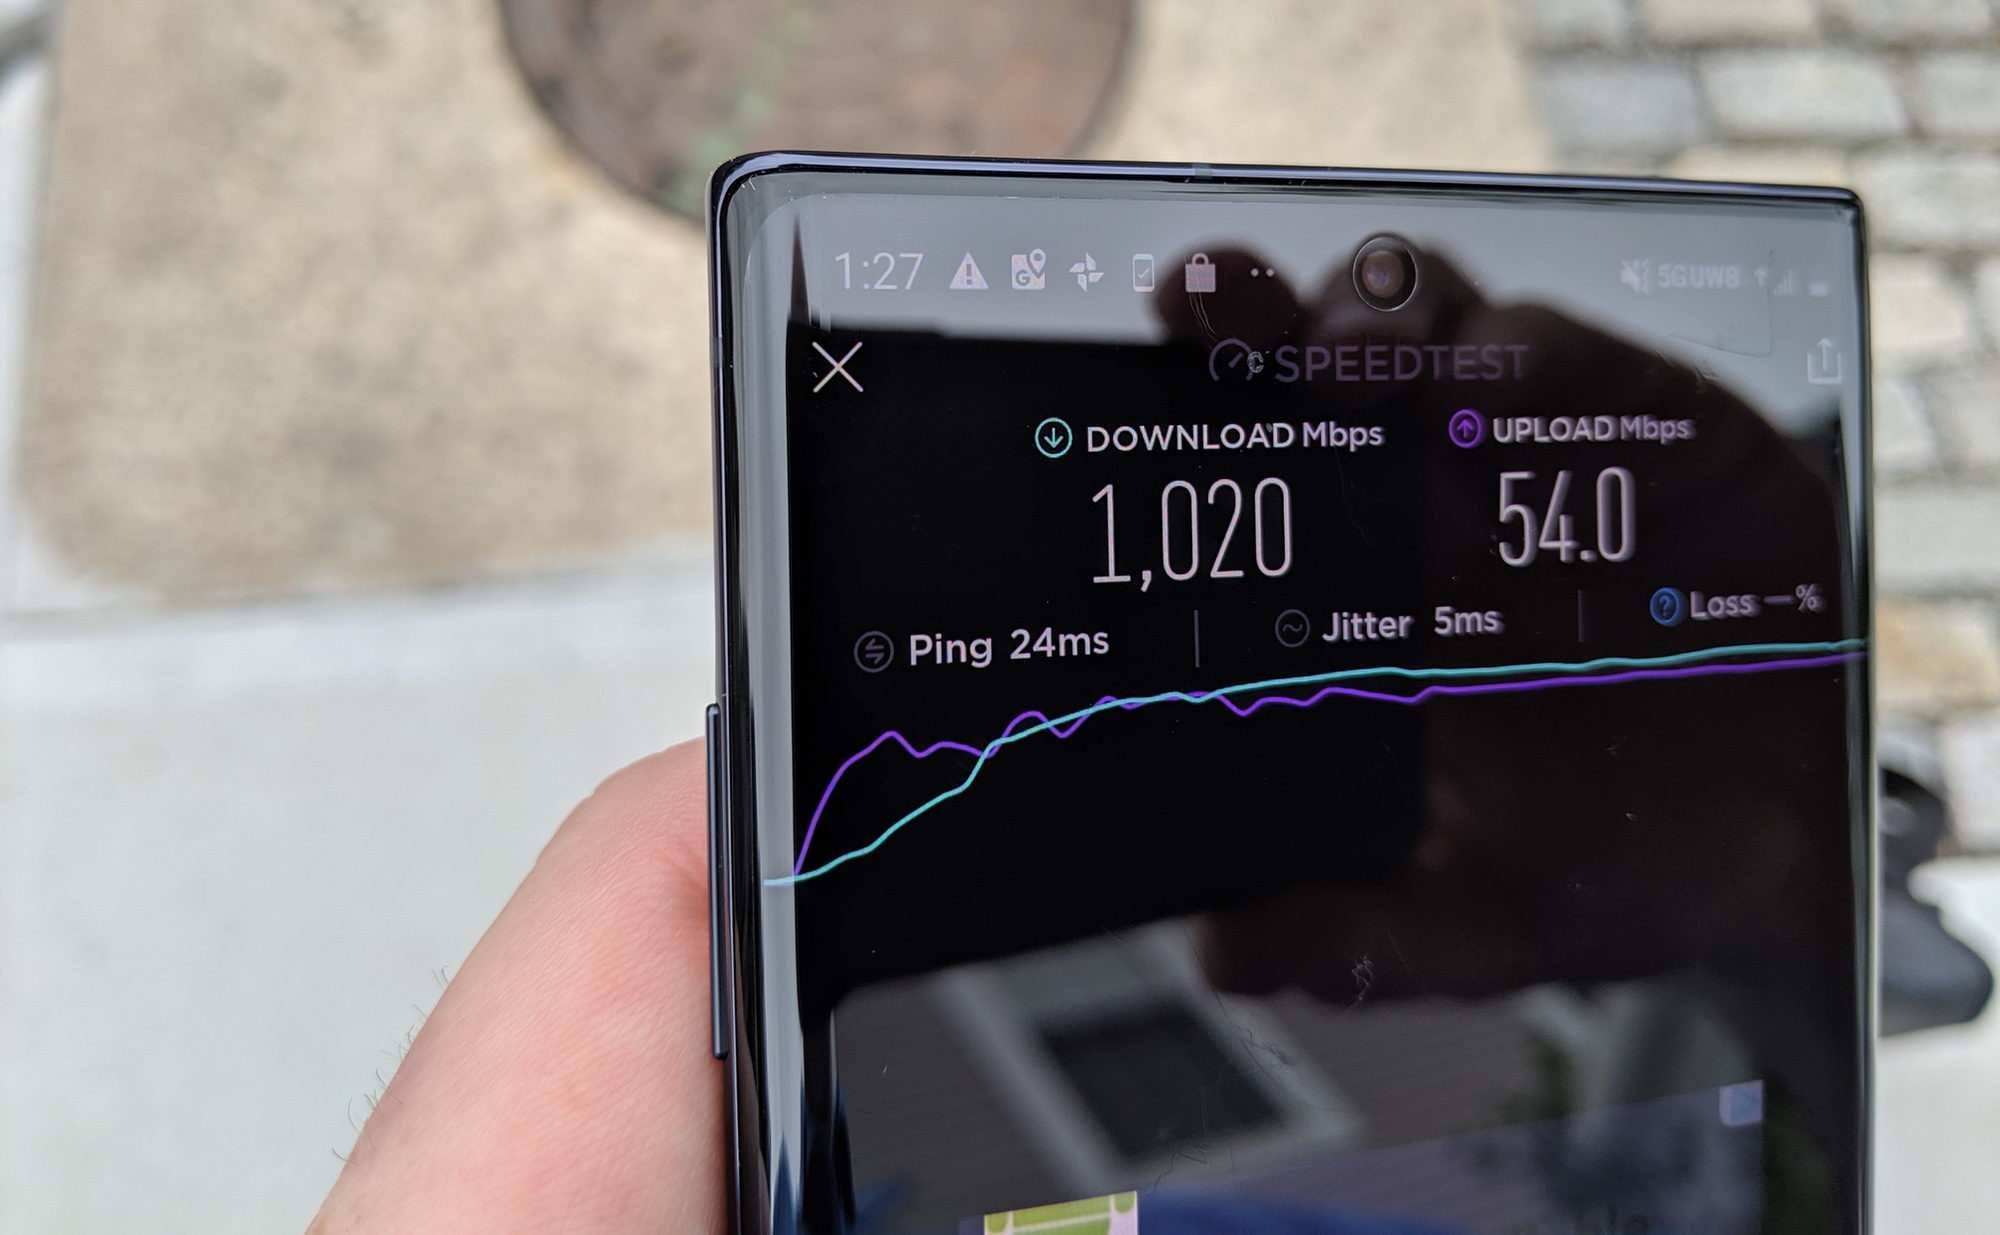 Galaxy Note 10 Plus 5G Tested: 1 Gbps Speeds — When You Can